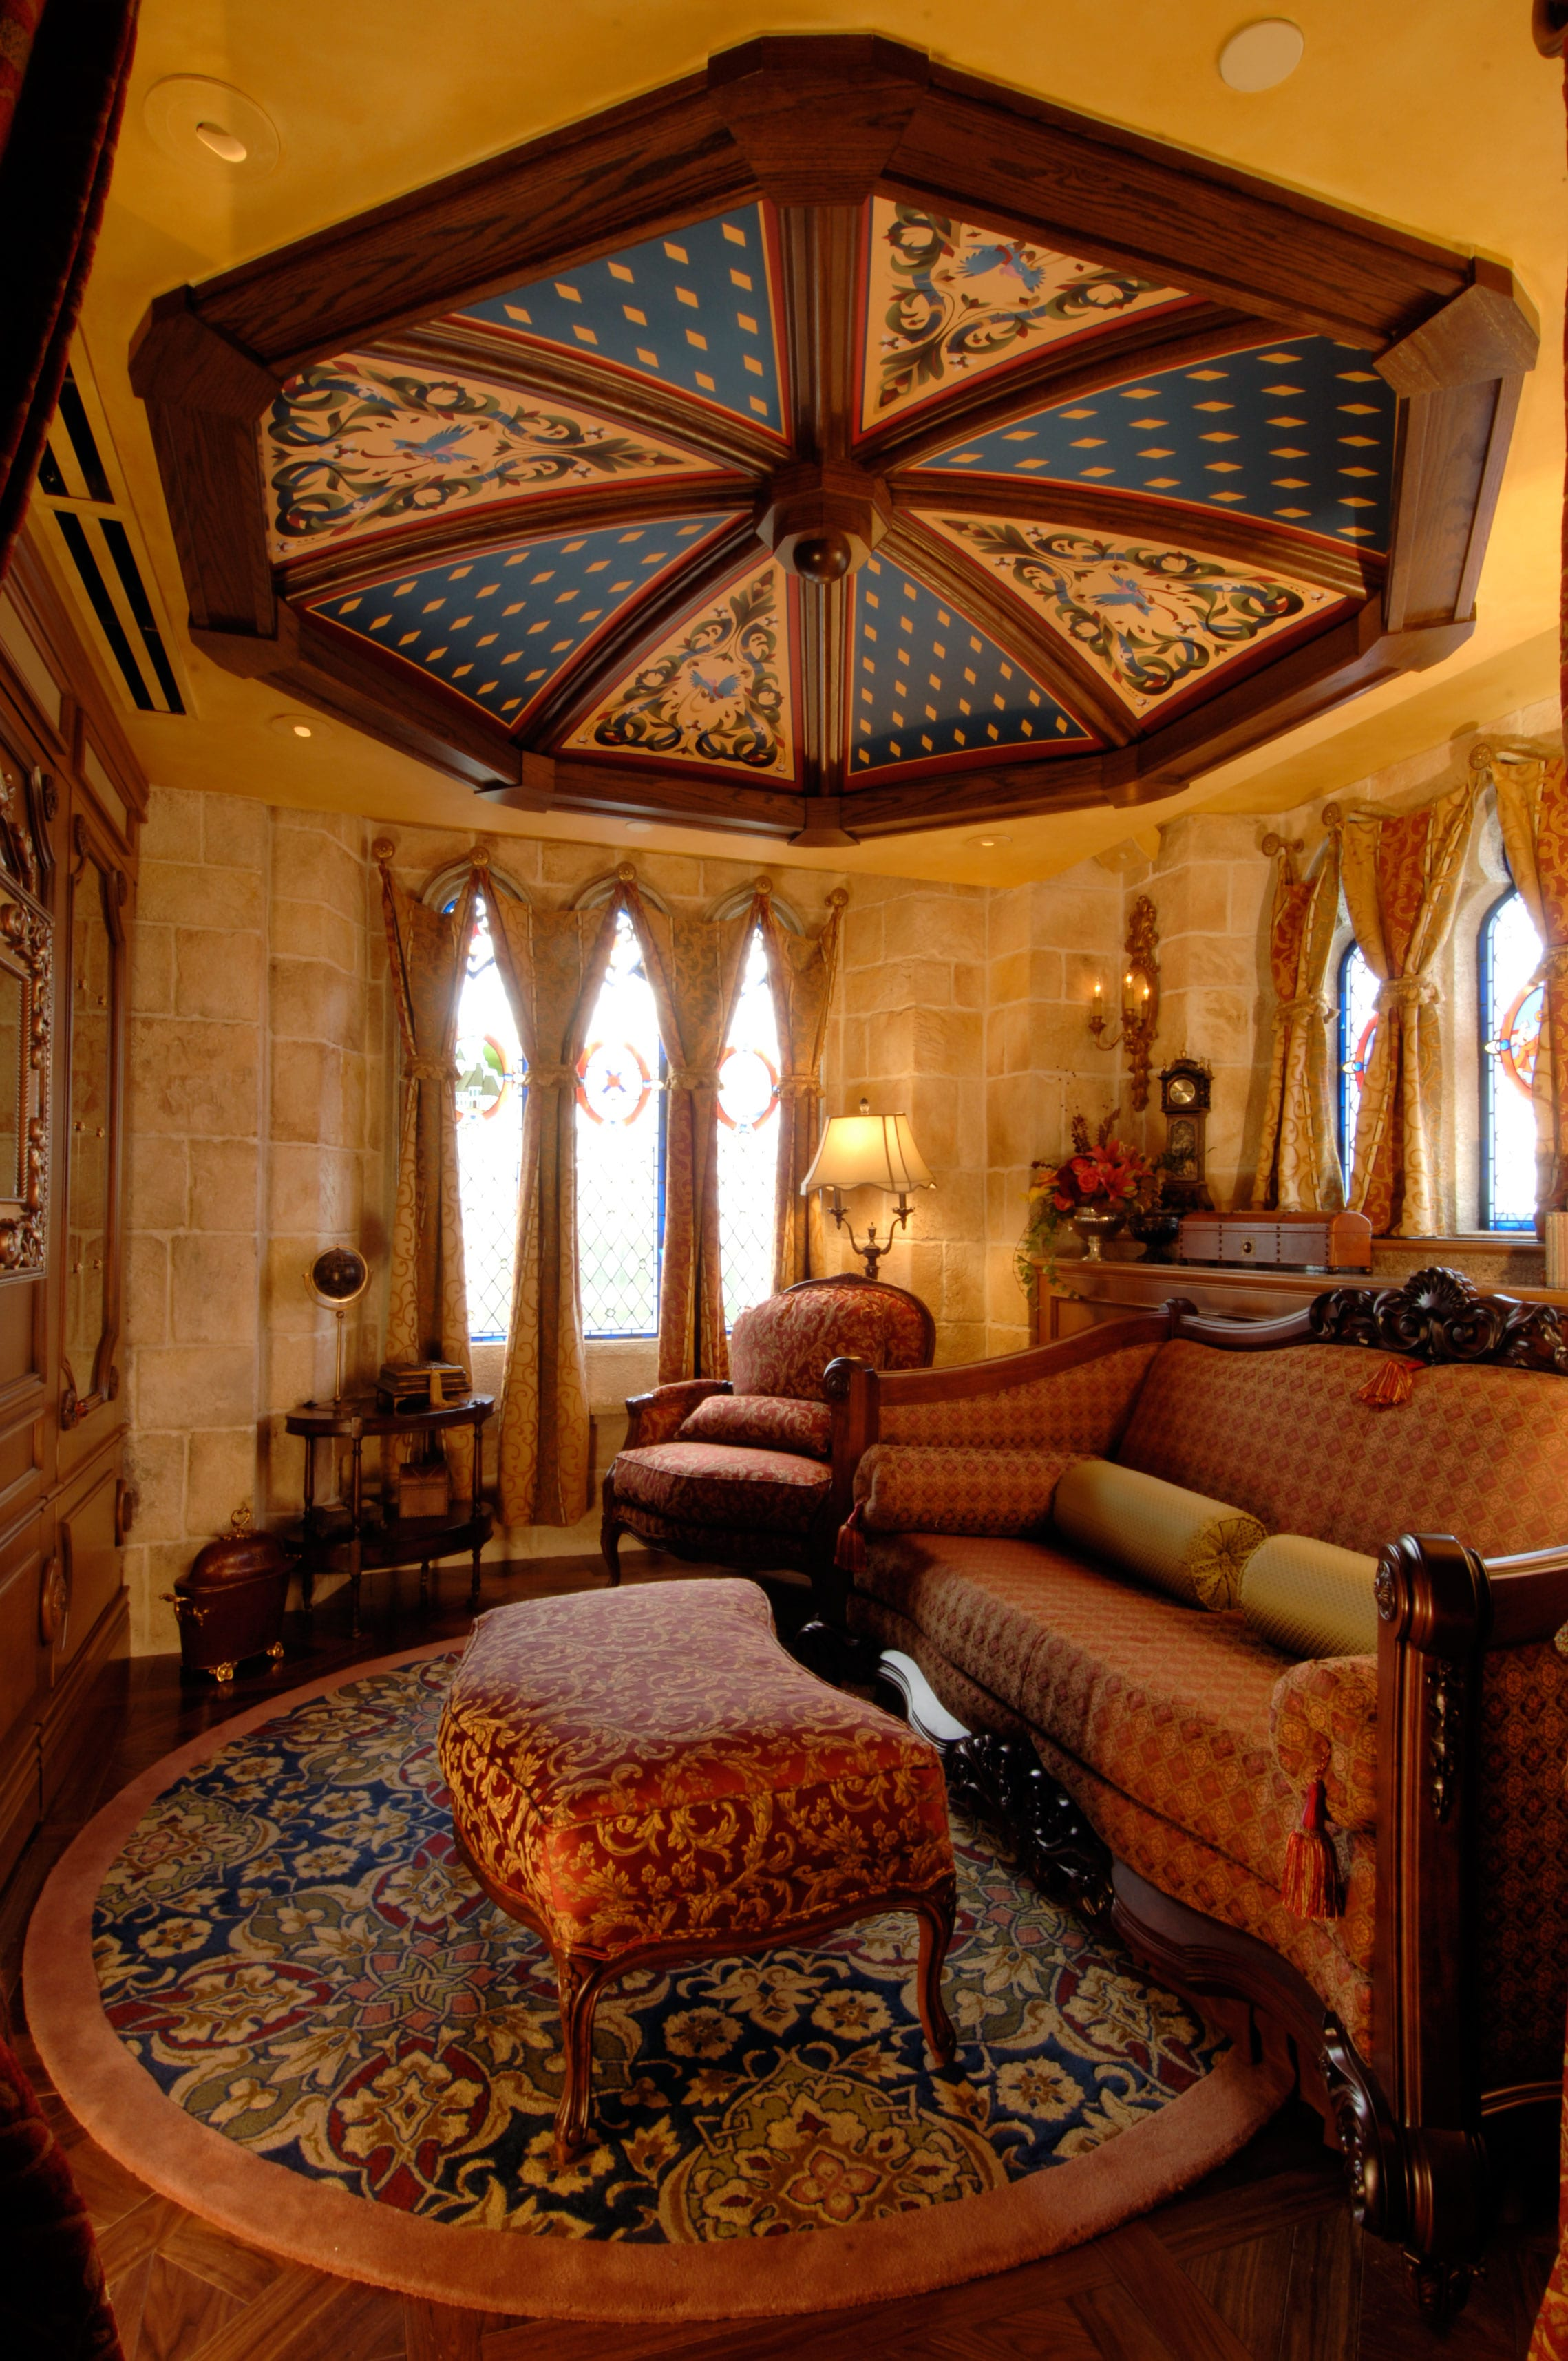 disney dream sofa bed wooden set designs in india cinderella castle gallery parks the sitting room inside suite is anchored by a custom